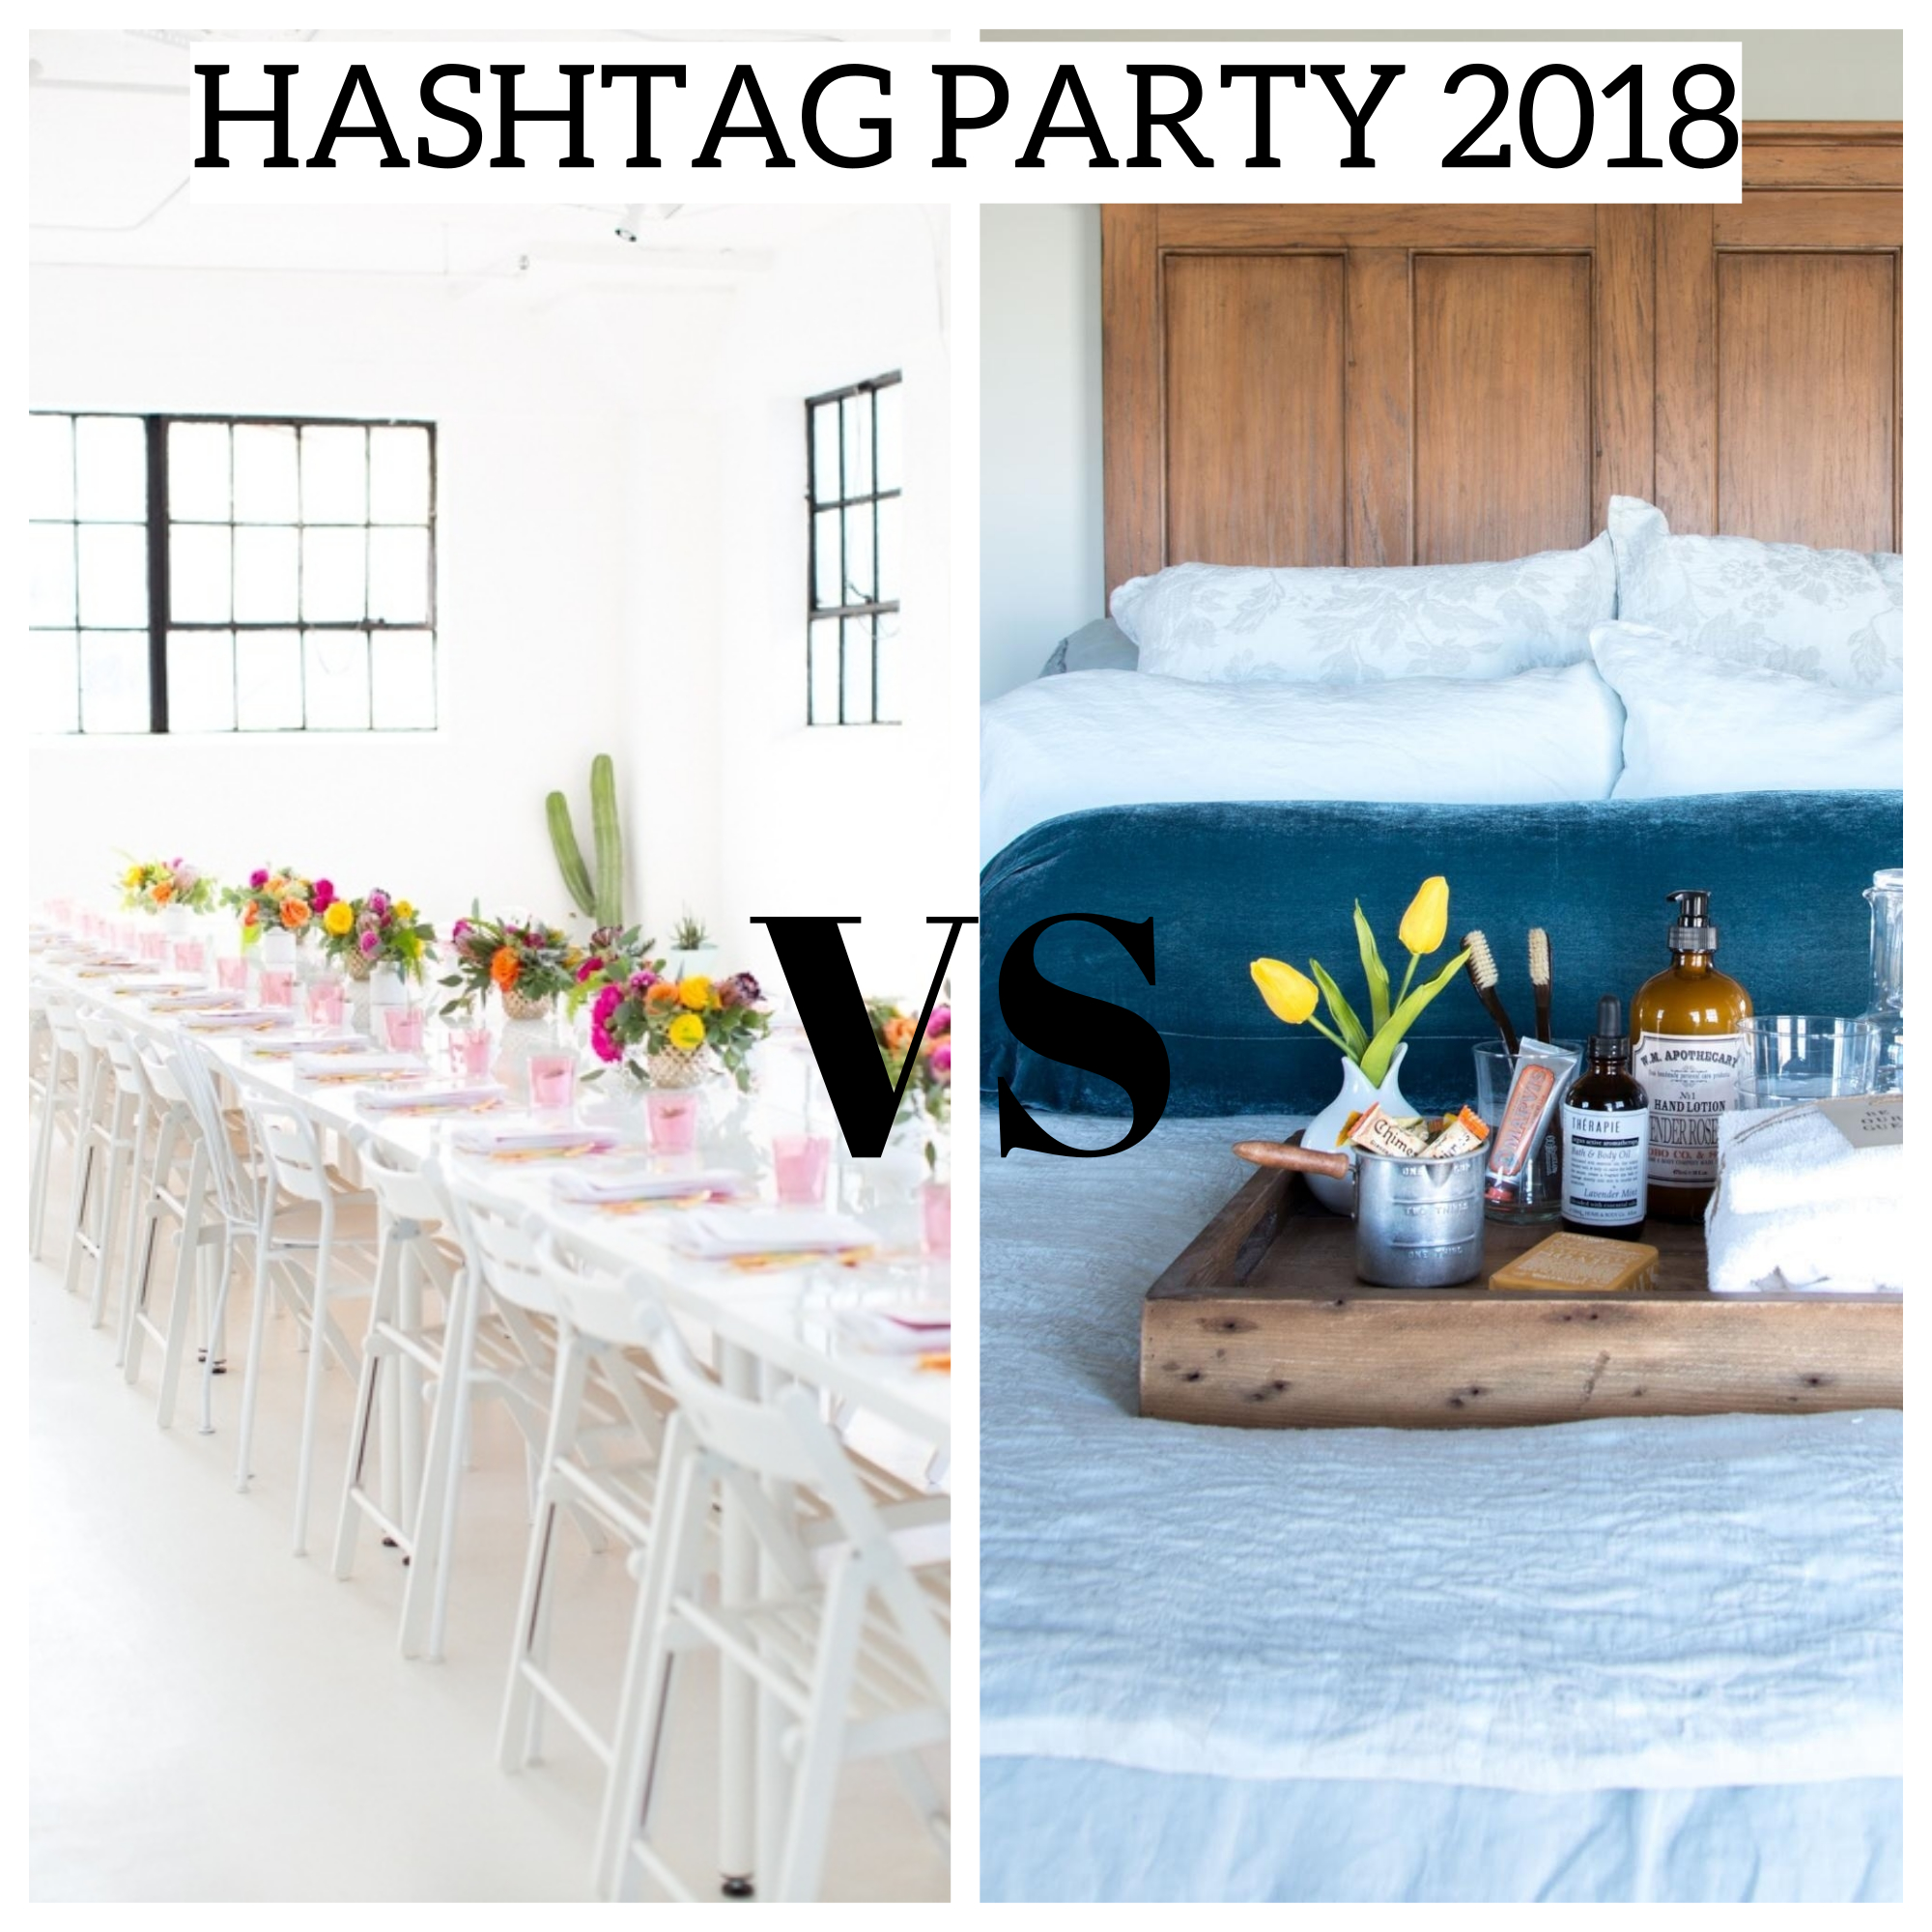 Hashtag Party 2018 - Plaster & Disaster